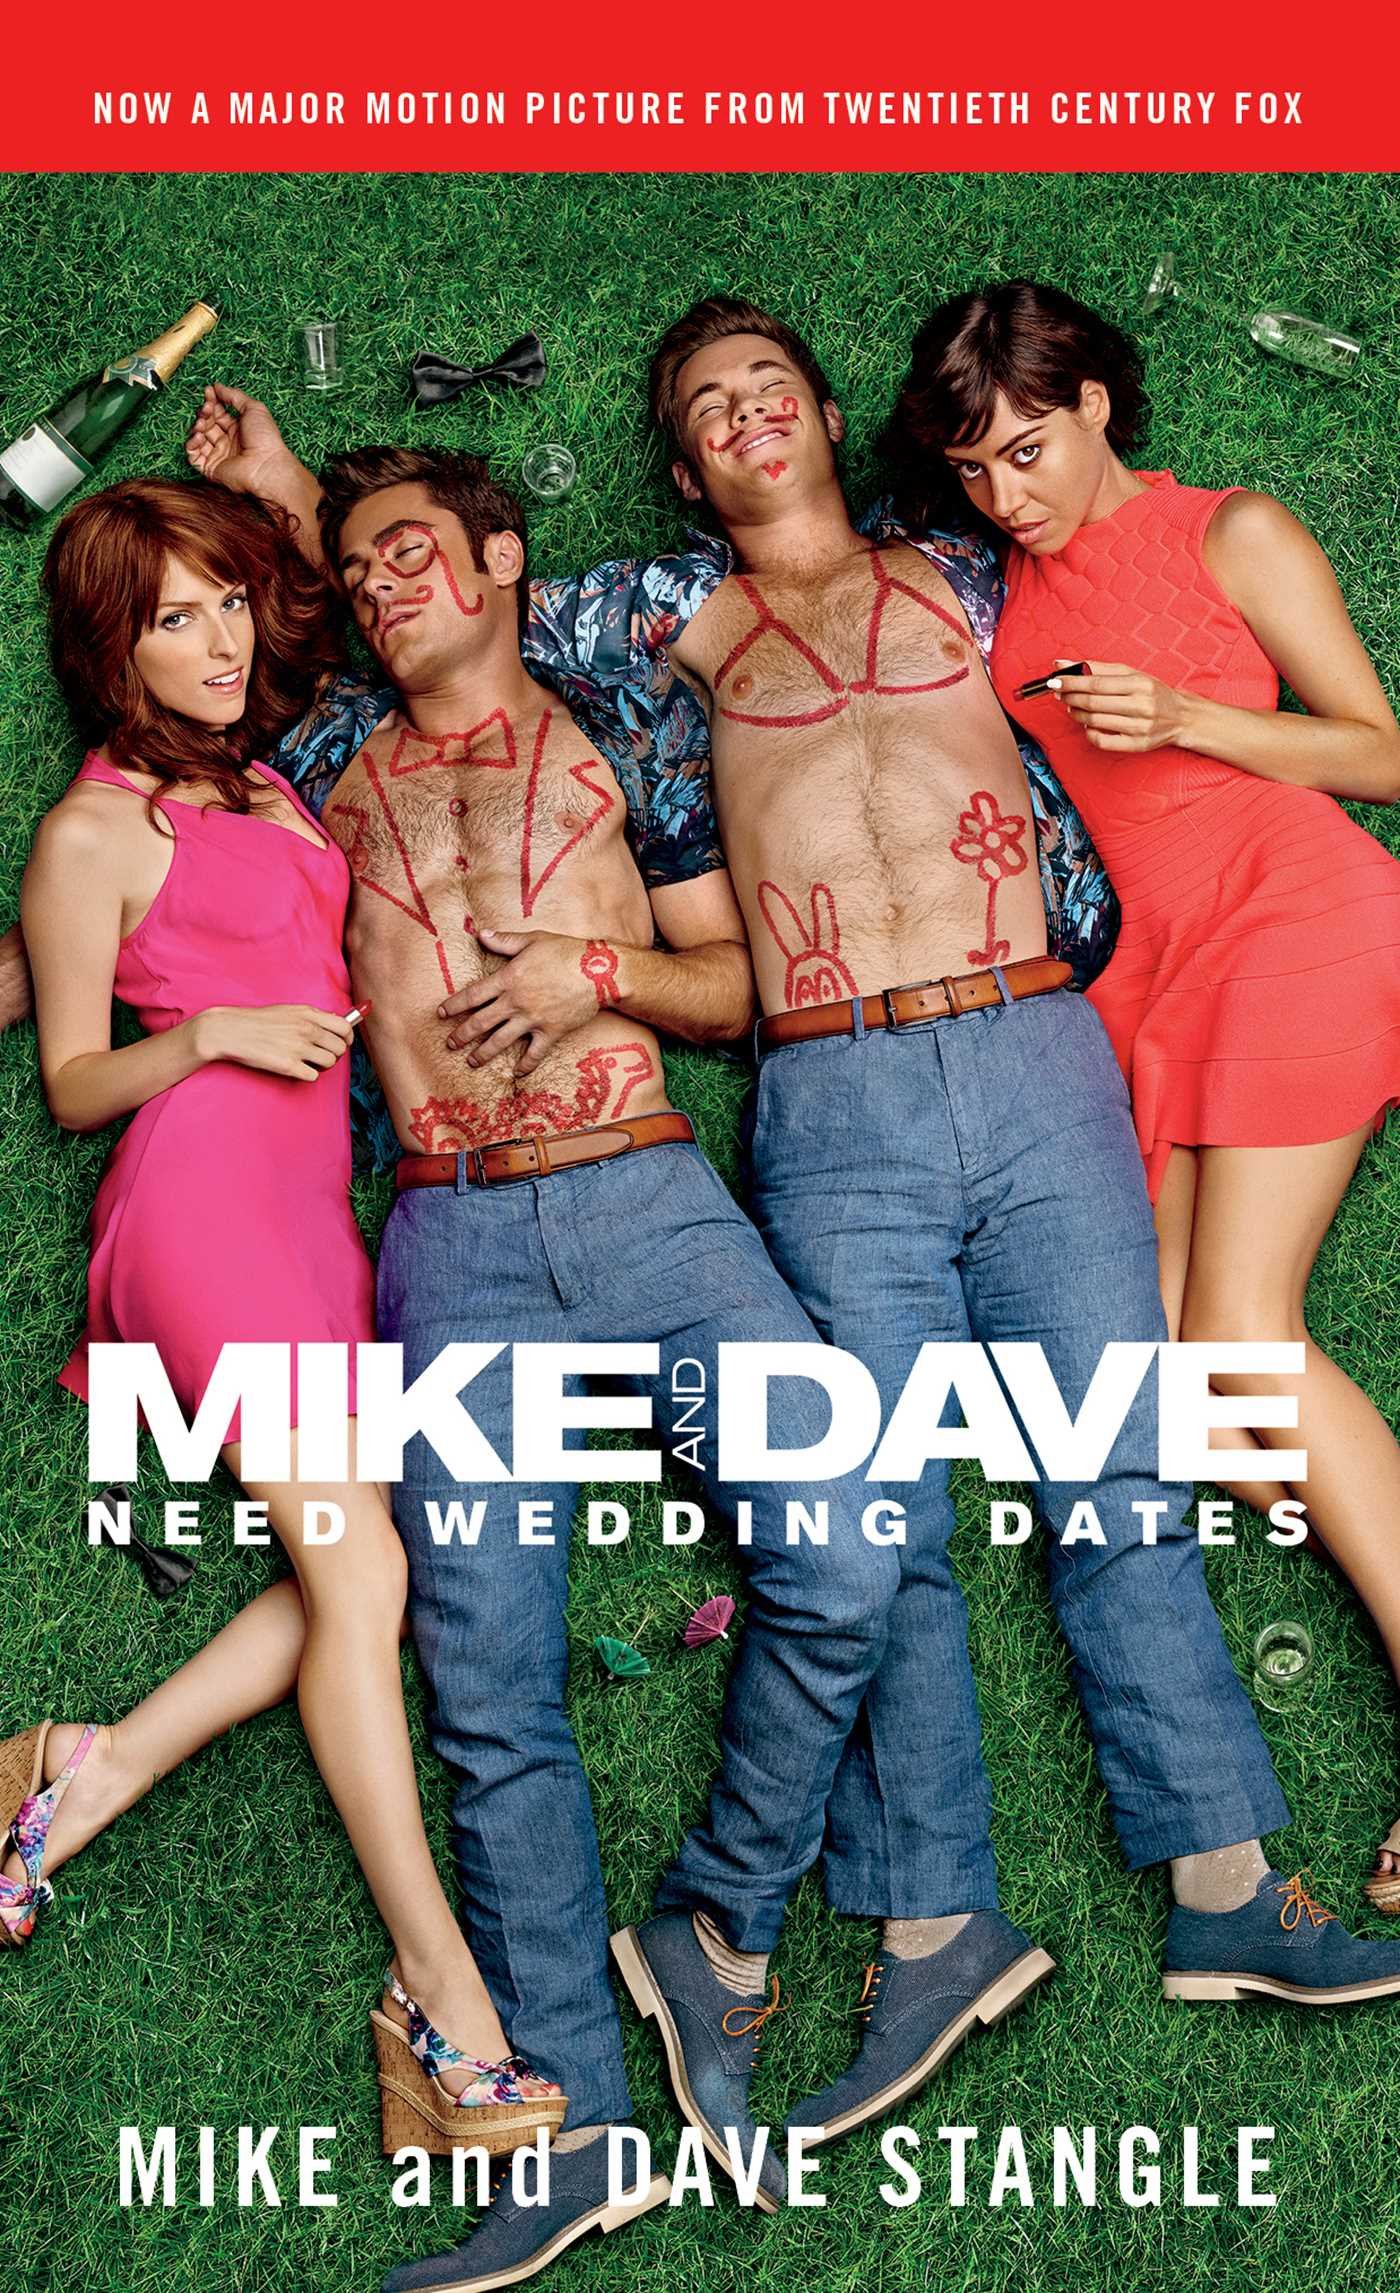 Mike and dave need wedding dates 9781476760100 hr